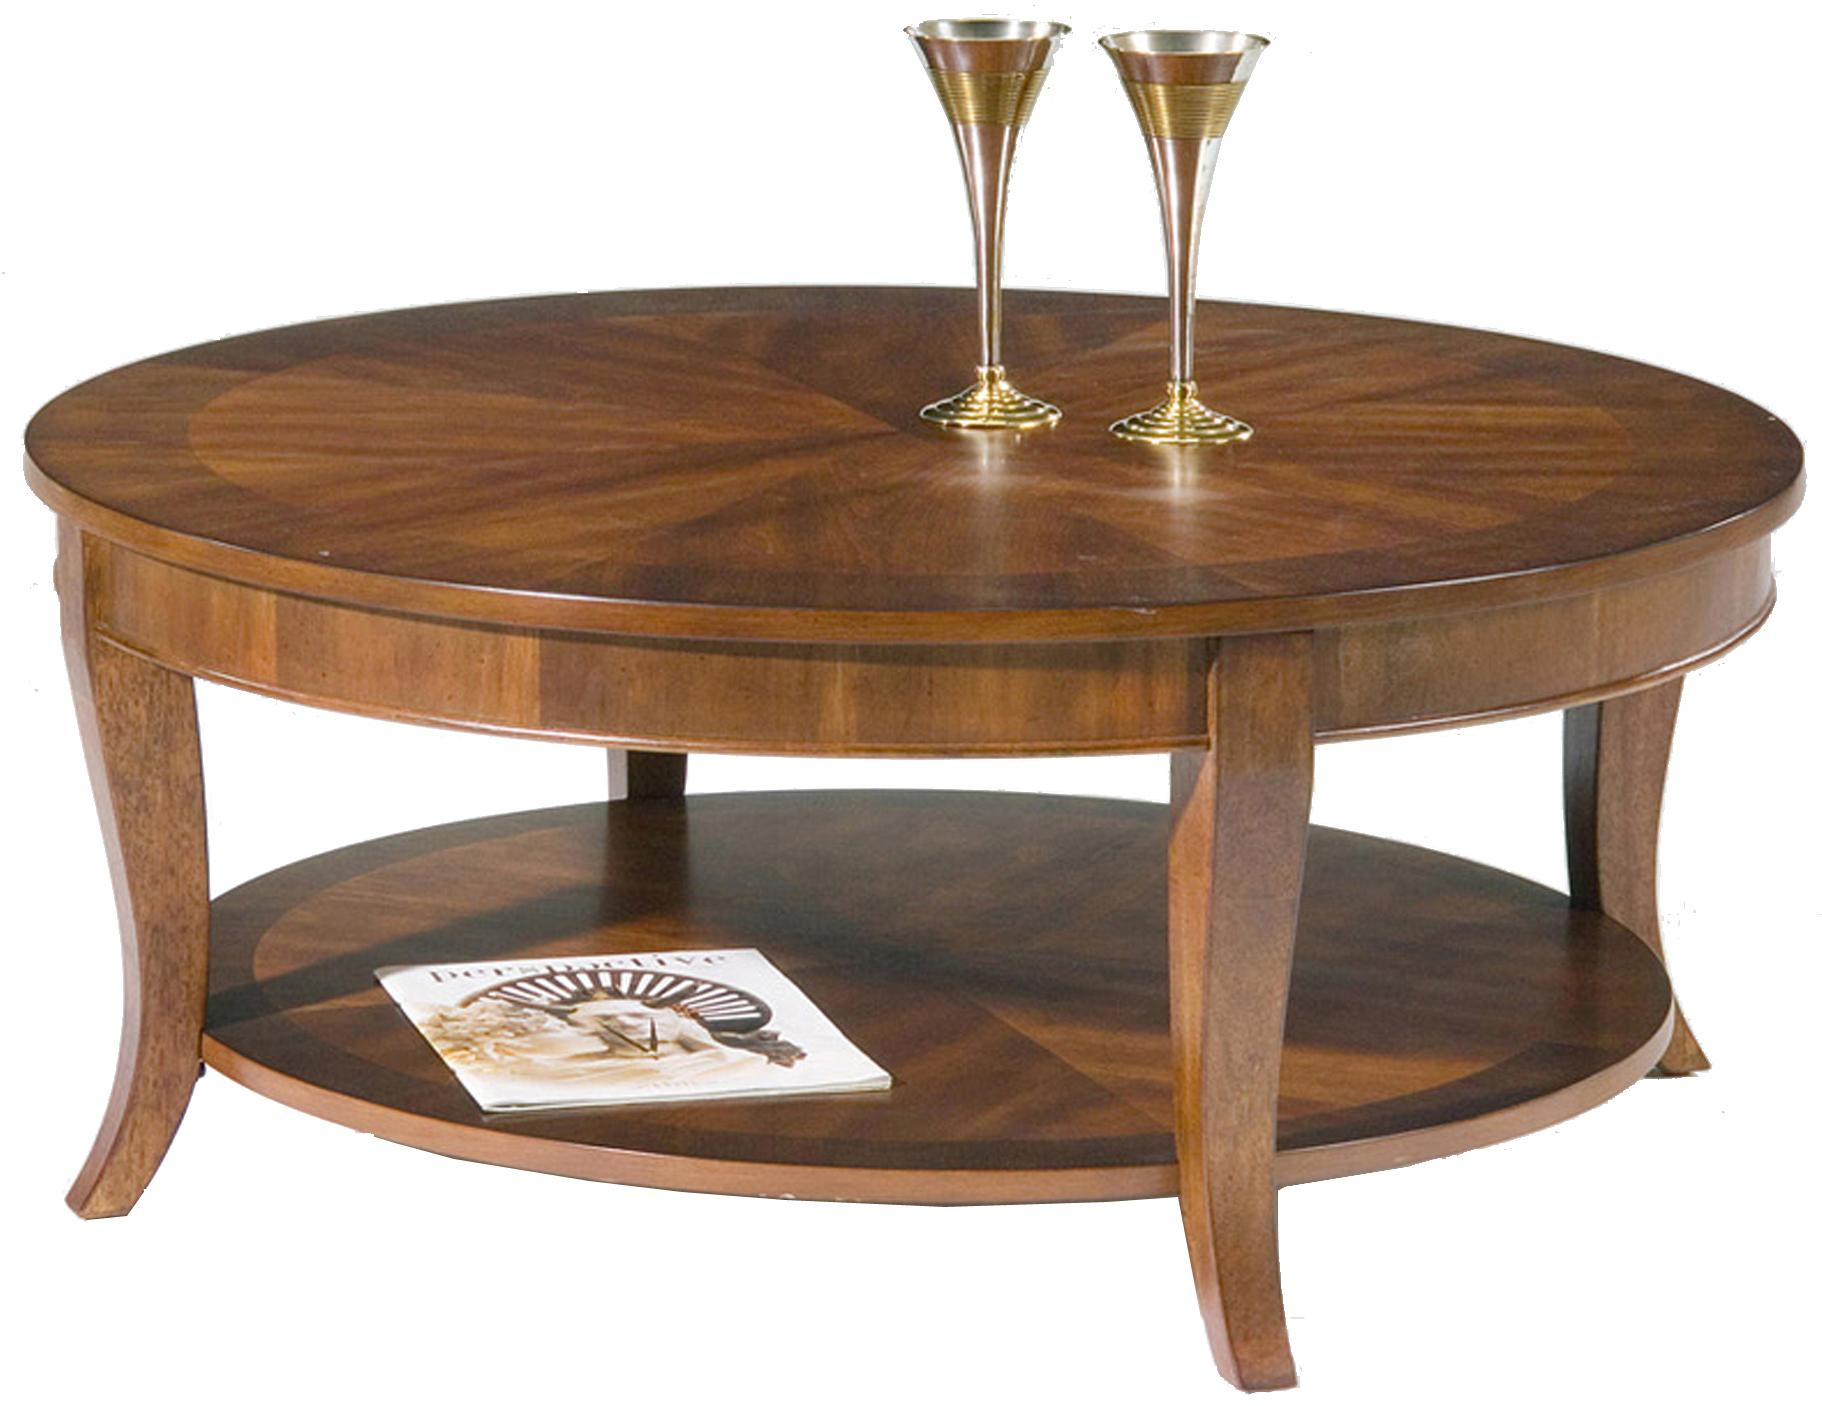 Liberty Furniture Bradshaw 748 Ot1010 Round Cocktail Table With Shelf Furniture And